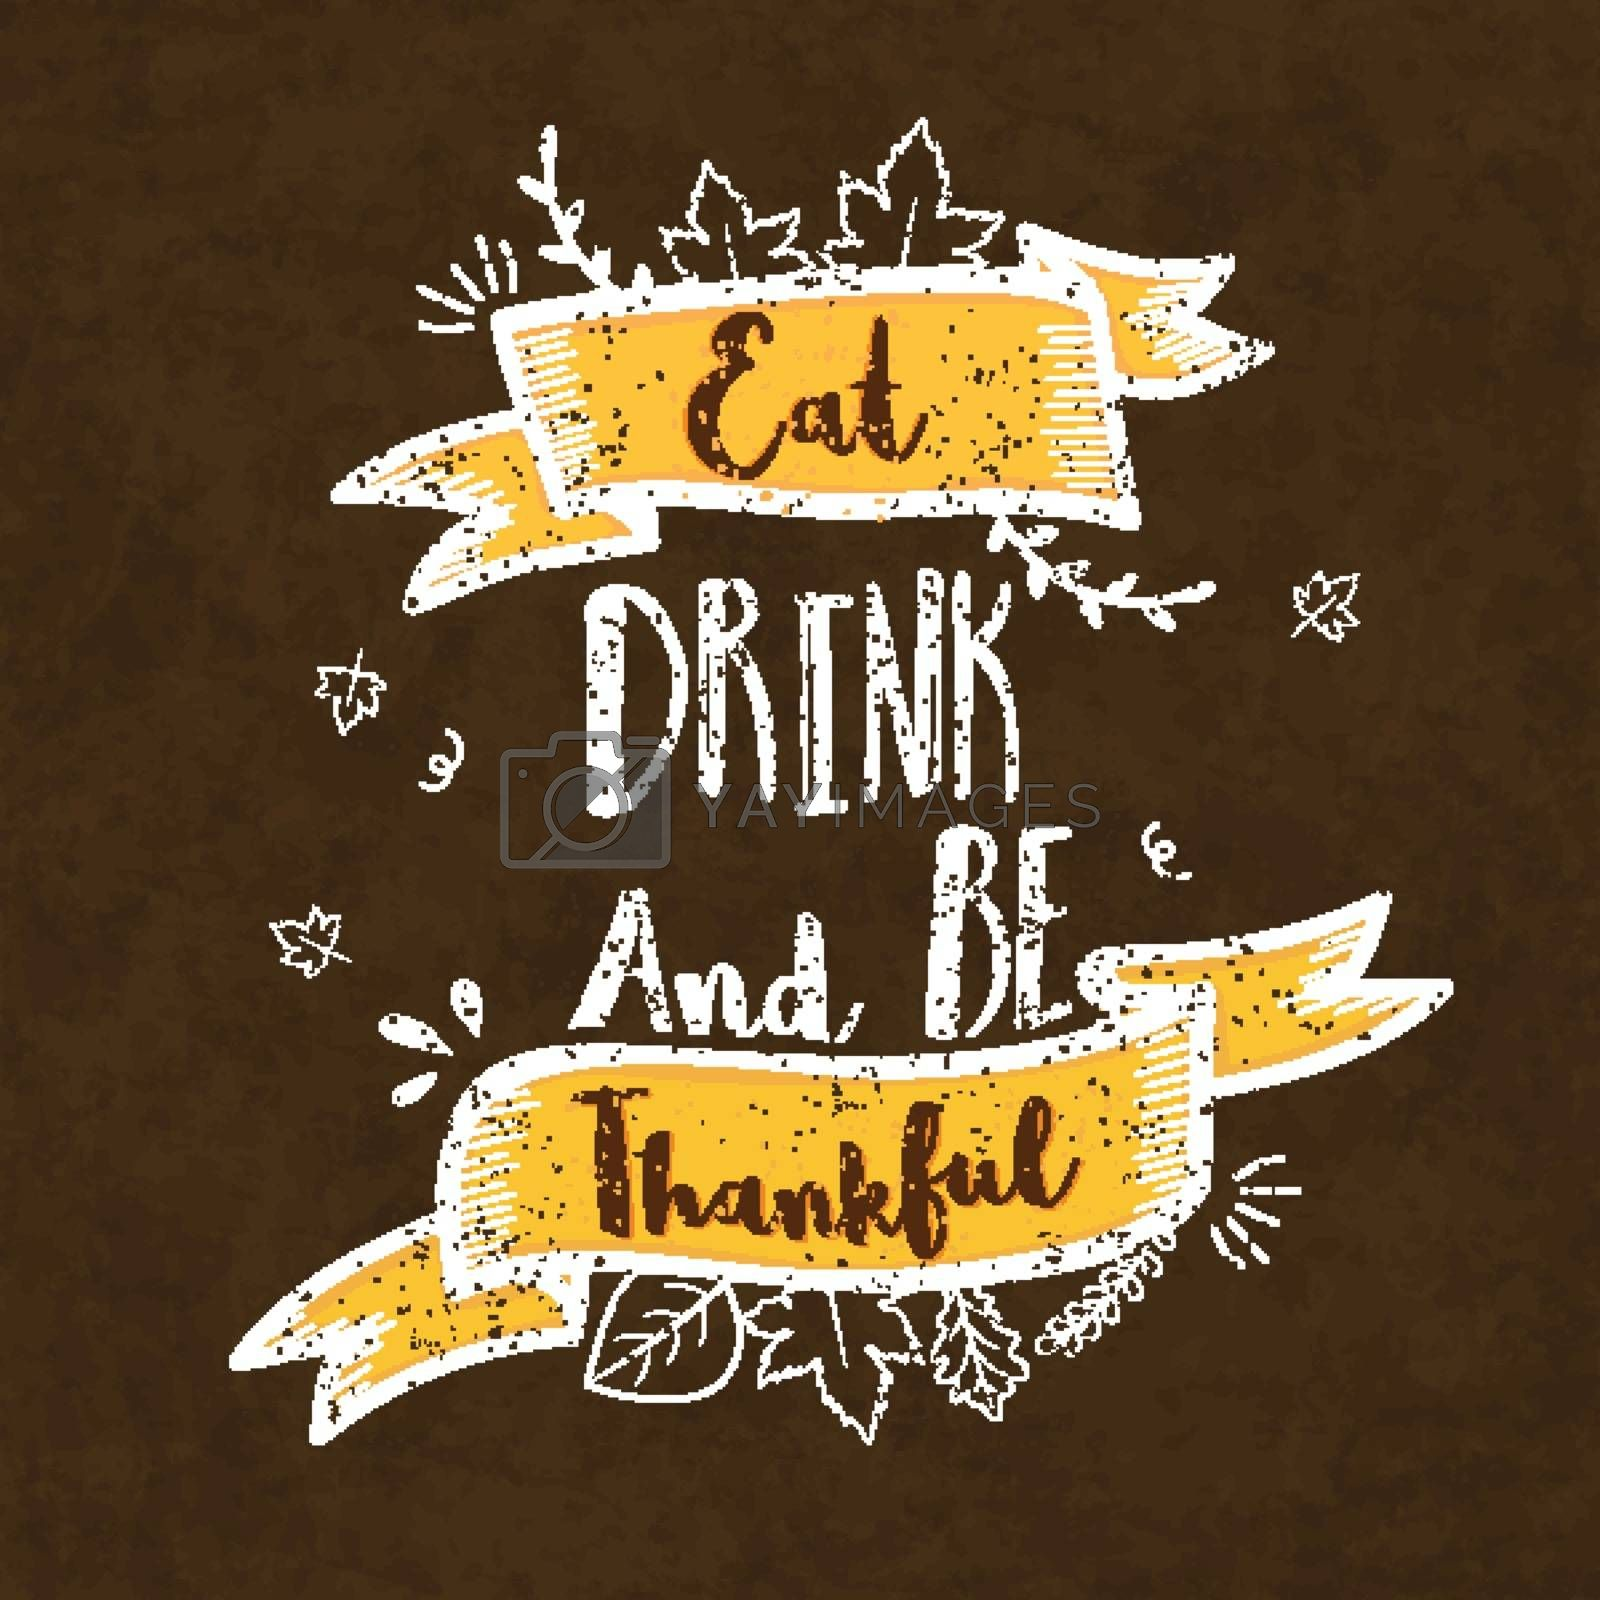 Creative lettering design Eat, Drink and Be Thankful with ribbons on grungy background, Vintage Greeting Card for Happy Thanksgiving Day celebration.